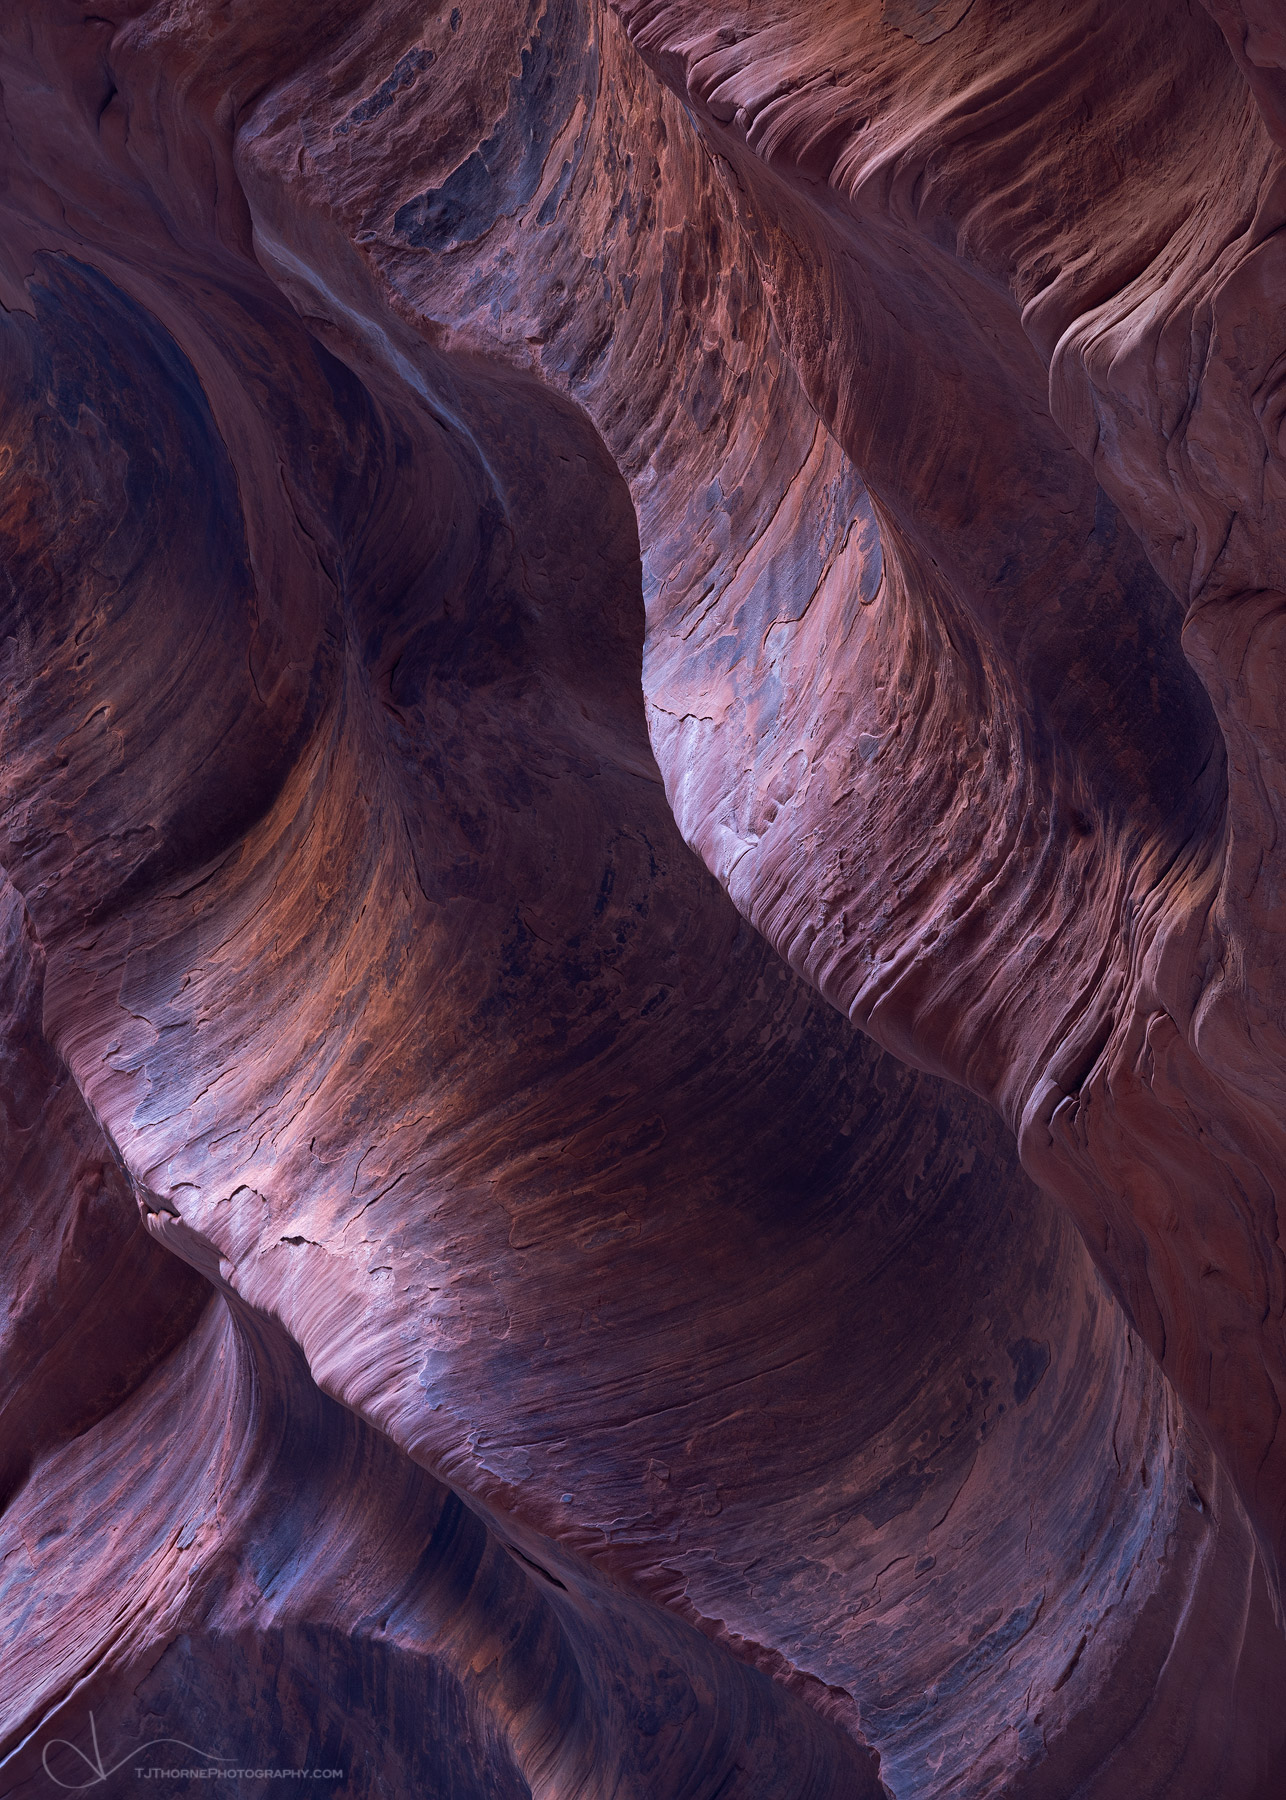 FINE ART LIMITED EDITION OF 100 An abstract of light on the canyon wall of Buckskin Gulch, Vermillion Cliffs Wilderness, Utah...